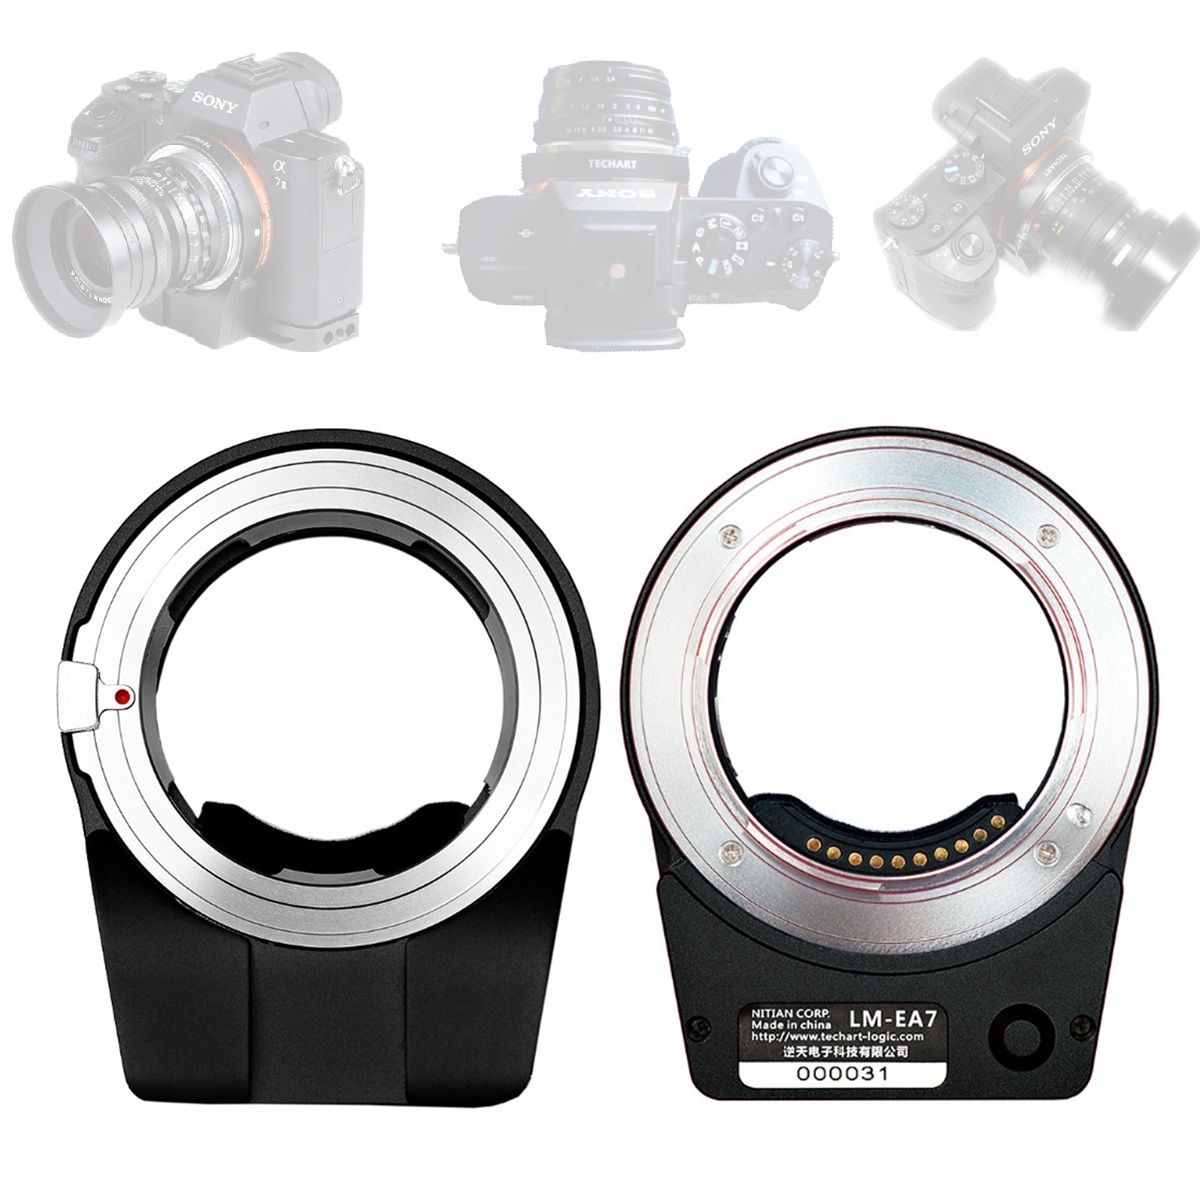 TECHART Pro LM-EA7 Auto Focus AF Lens Adapter Ring For Leica M LM Lens & Sony NEX E FE Mount MD/A/EF/FD/PK/M42/AI/EOS/LM-NEX